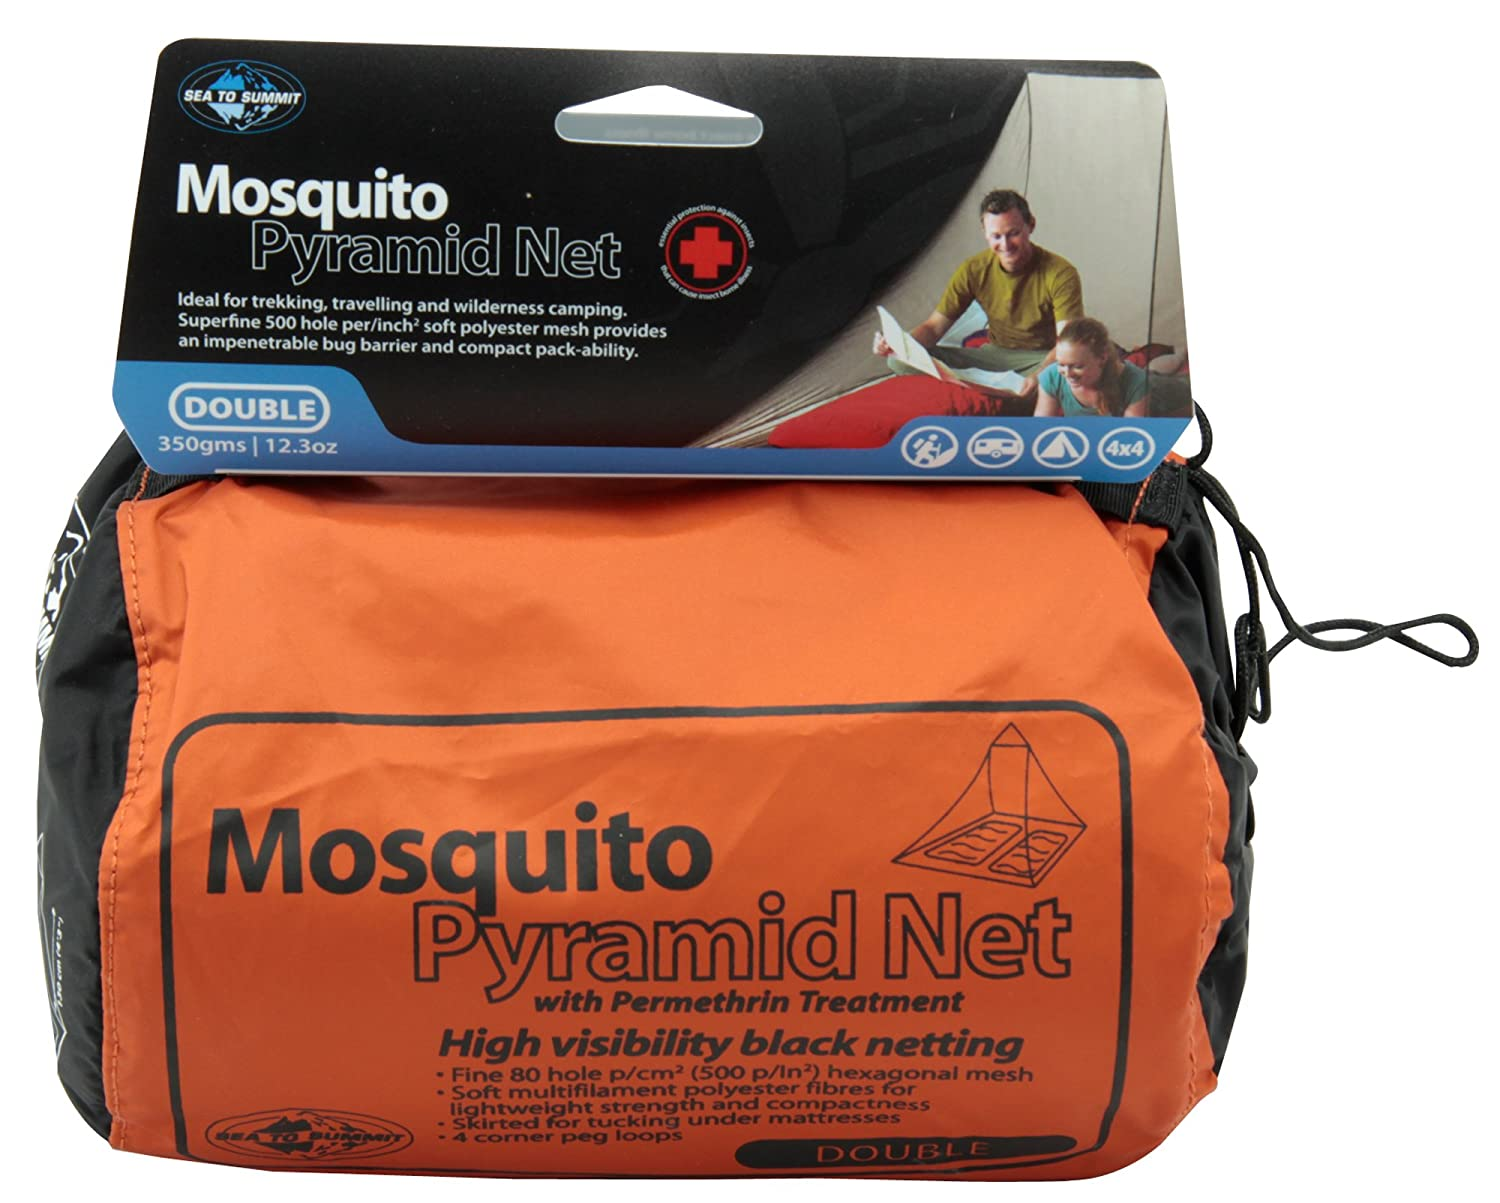 SEA TO SUMMIT MOSQUITO NET WITH PERMETHRIN (DOUBLE) 1700071